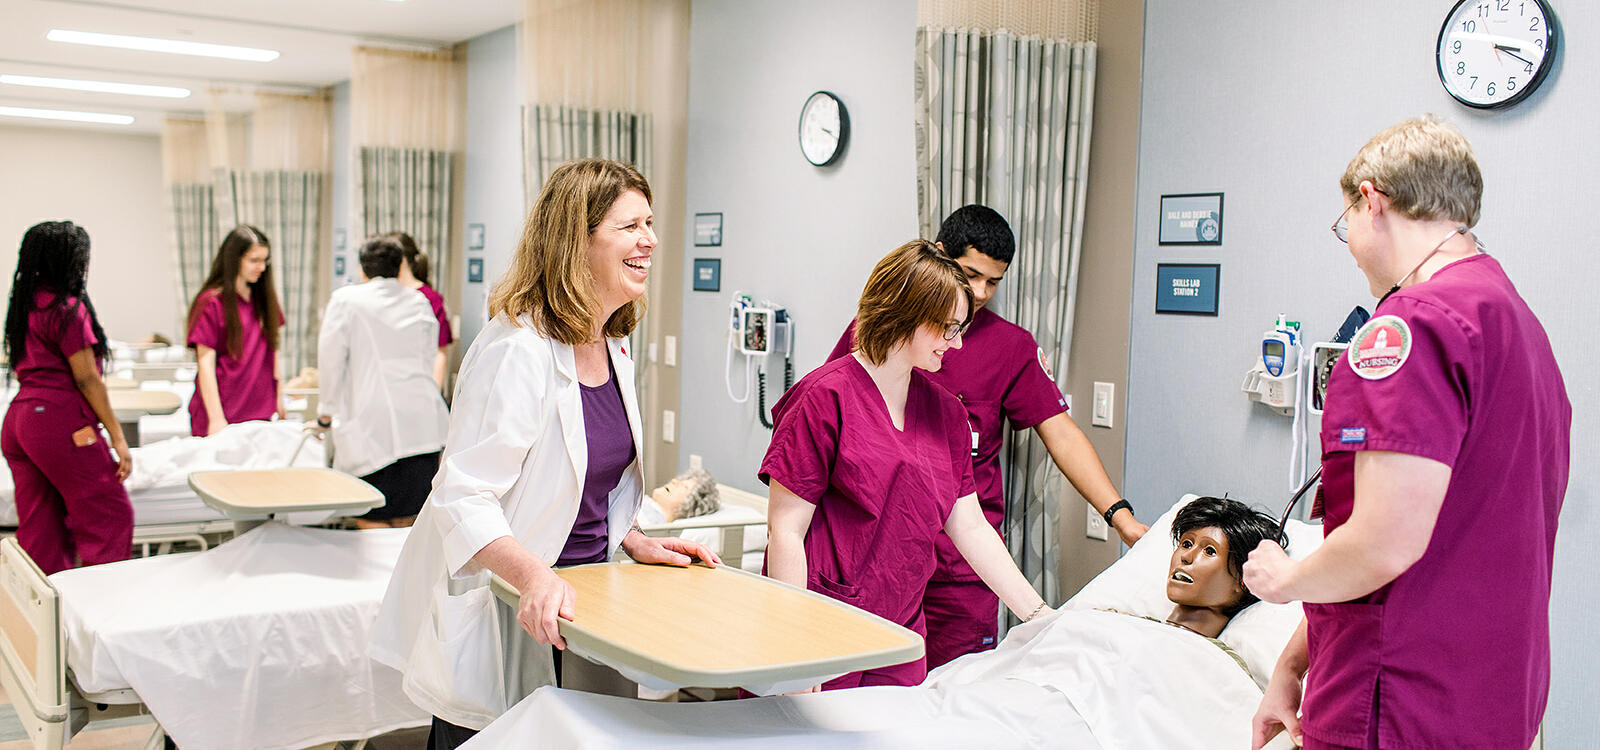 Three nursing students dressed in maroon scrubs look down at their patient and their professor watches over and smiles